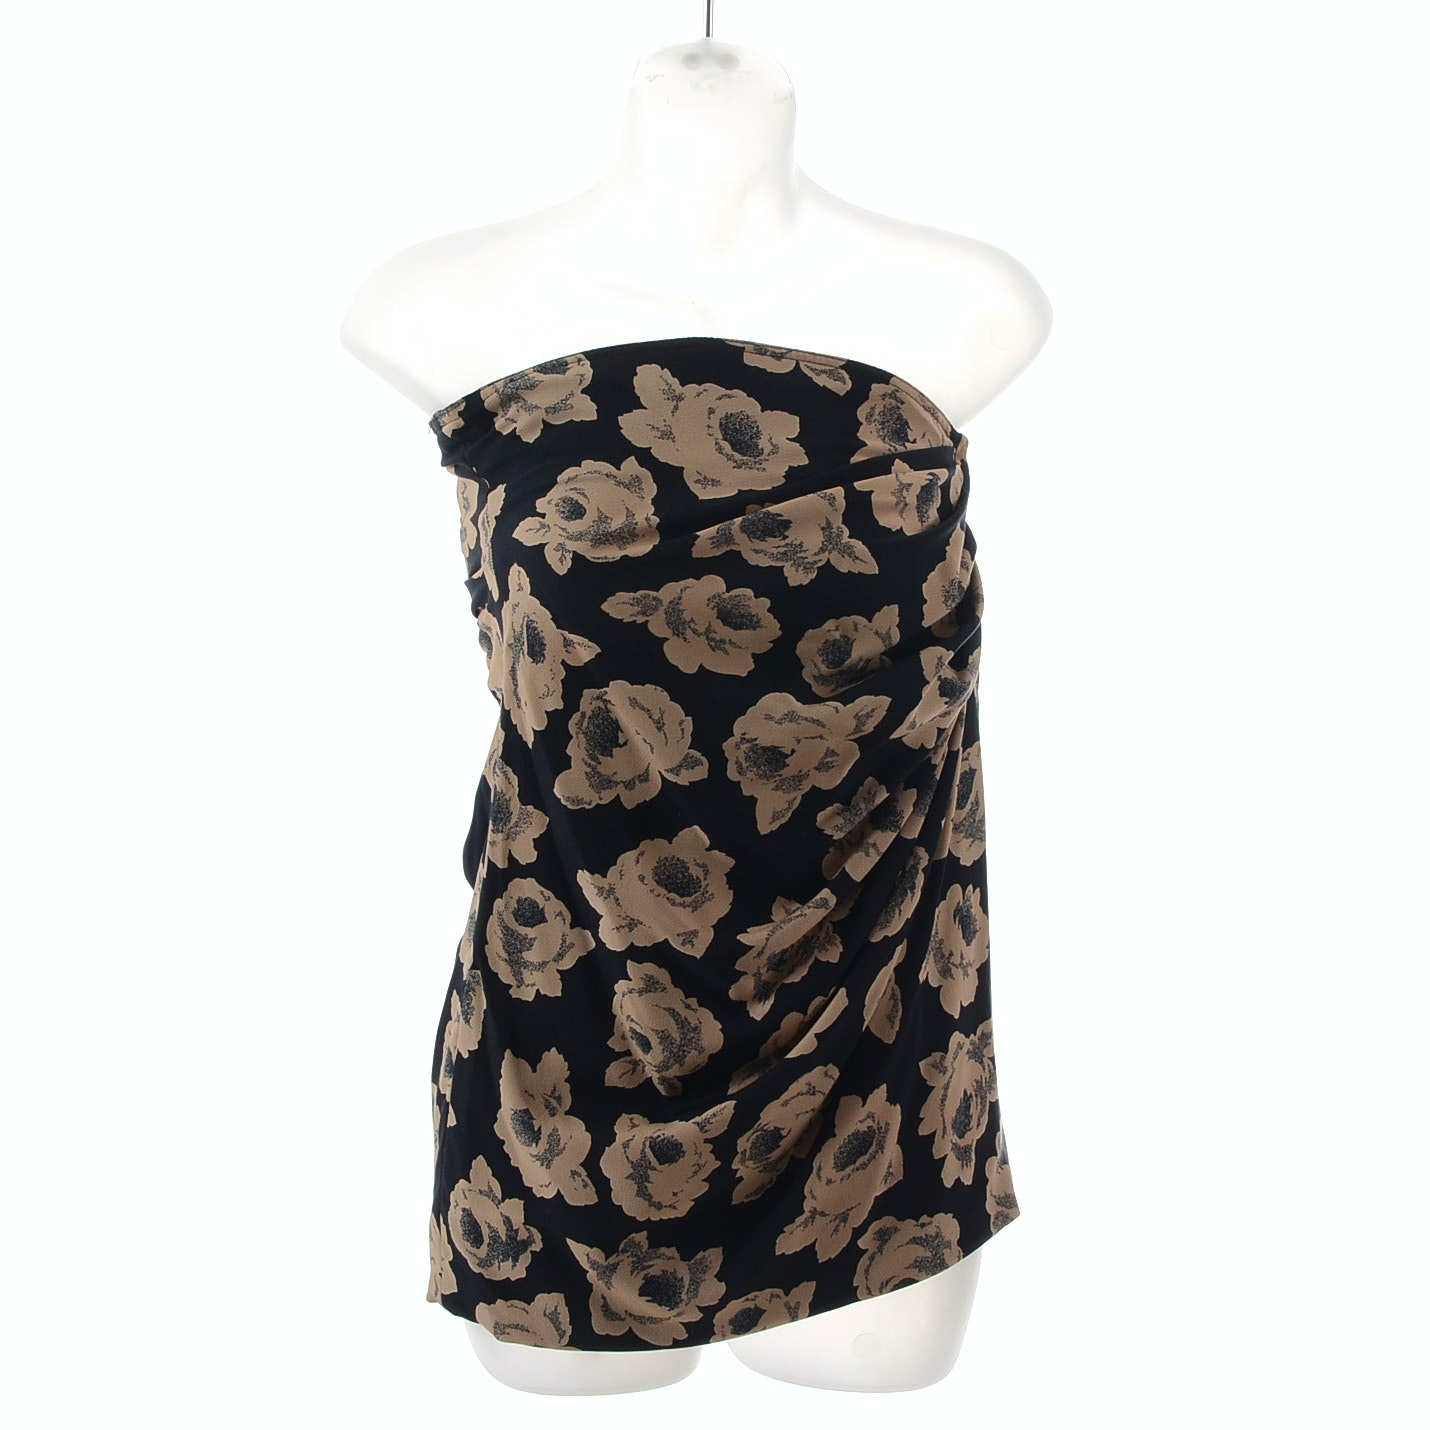 Emanuel Ungaro of Paris Parallele Floral Print Strapless Blouse with Ruching